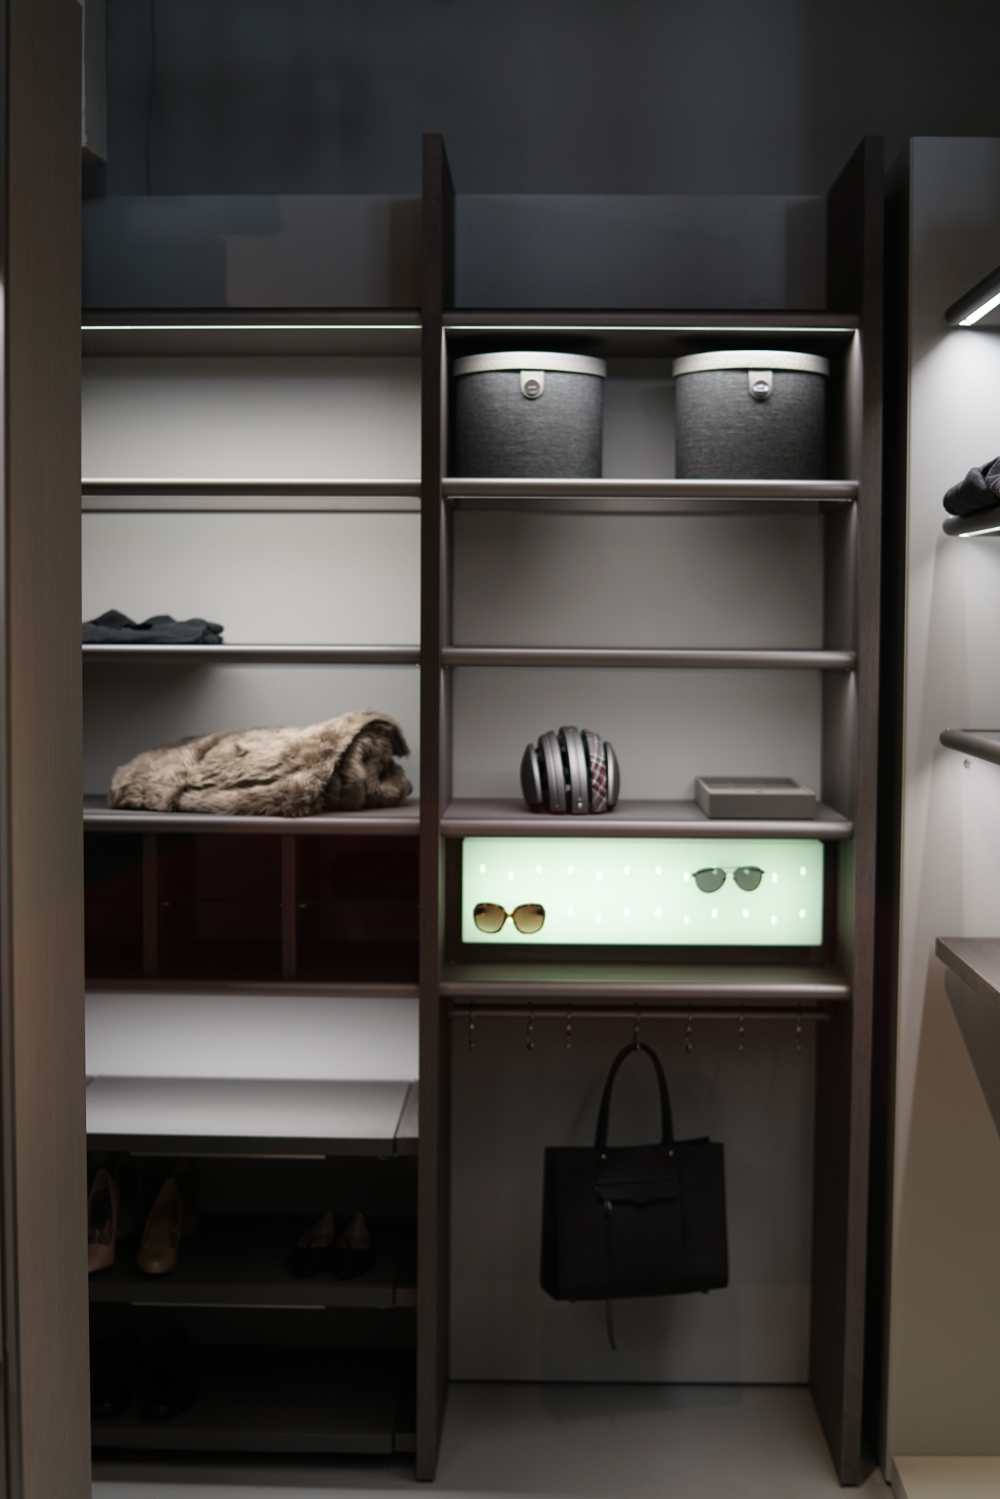 closet-shelf-space-interior-designer-miami-ft-lauderdale-hallandale-beach-hollywood-fl-florida